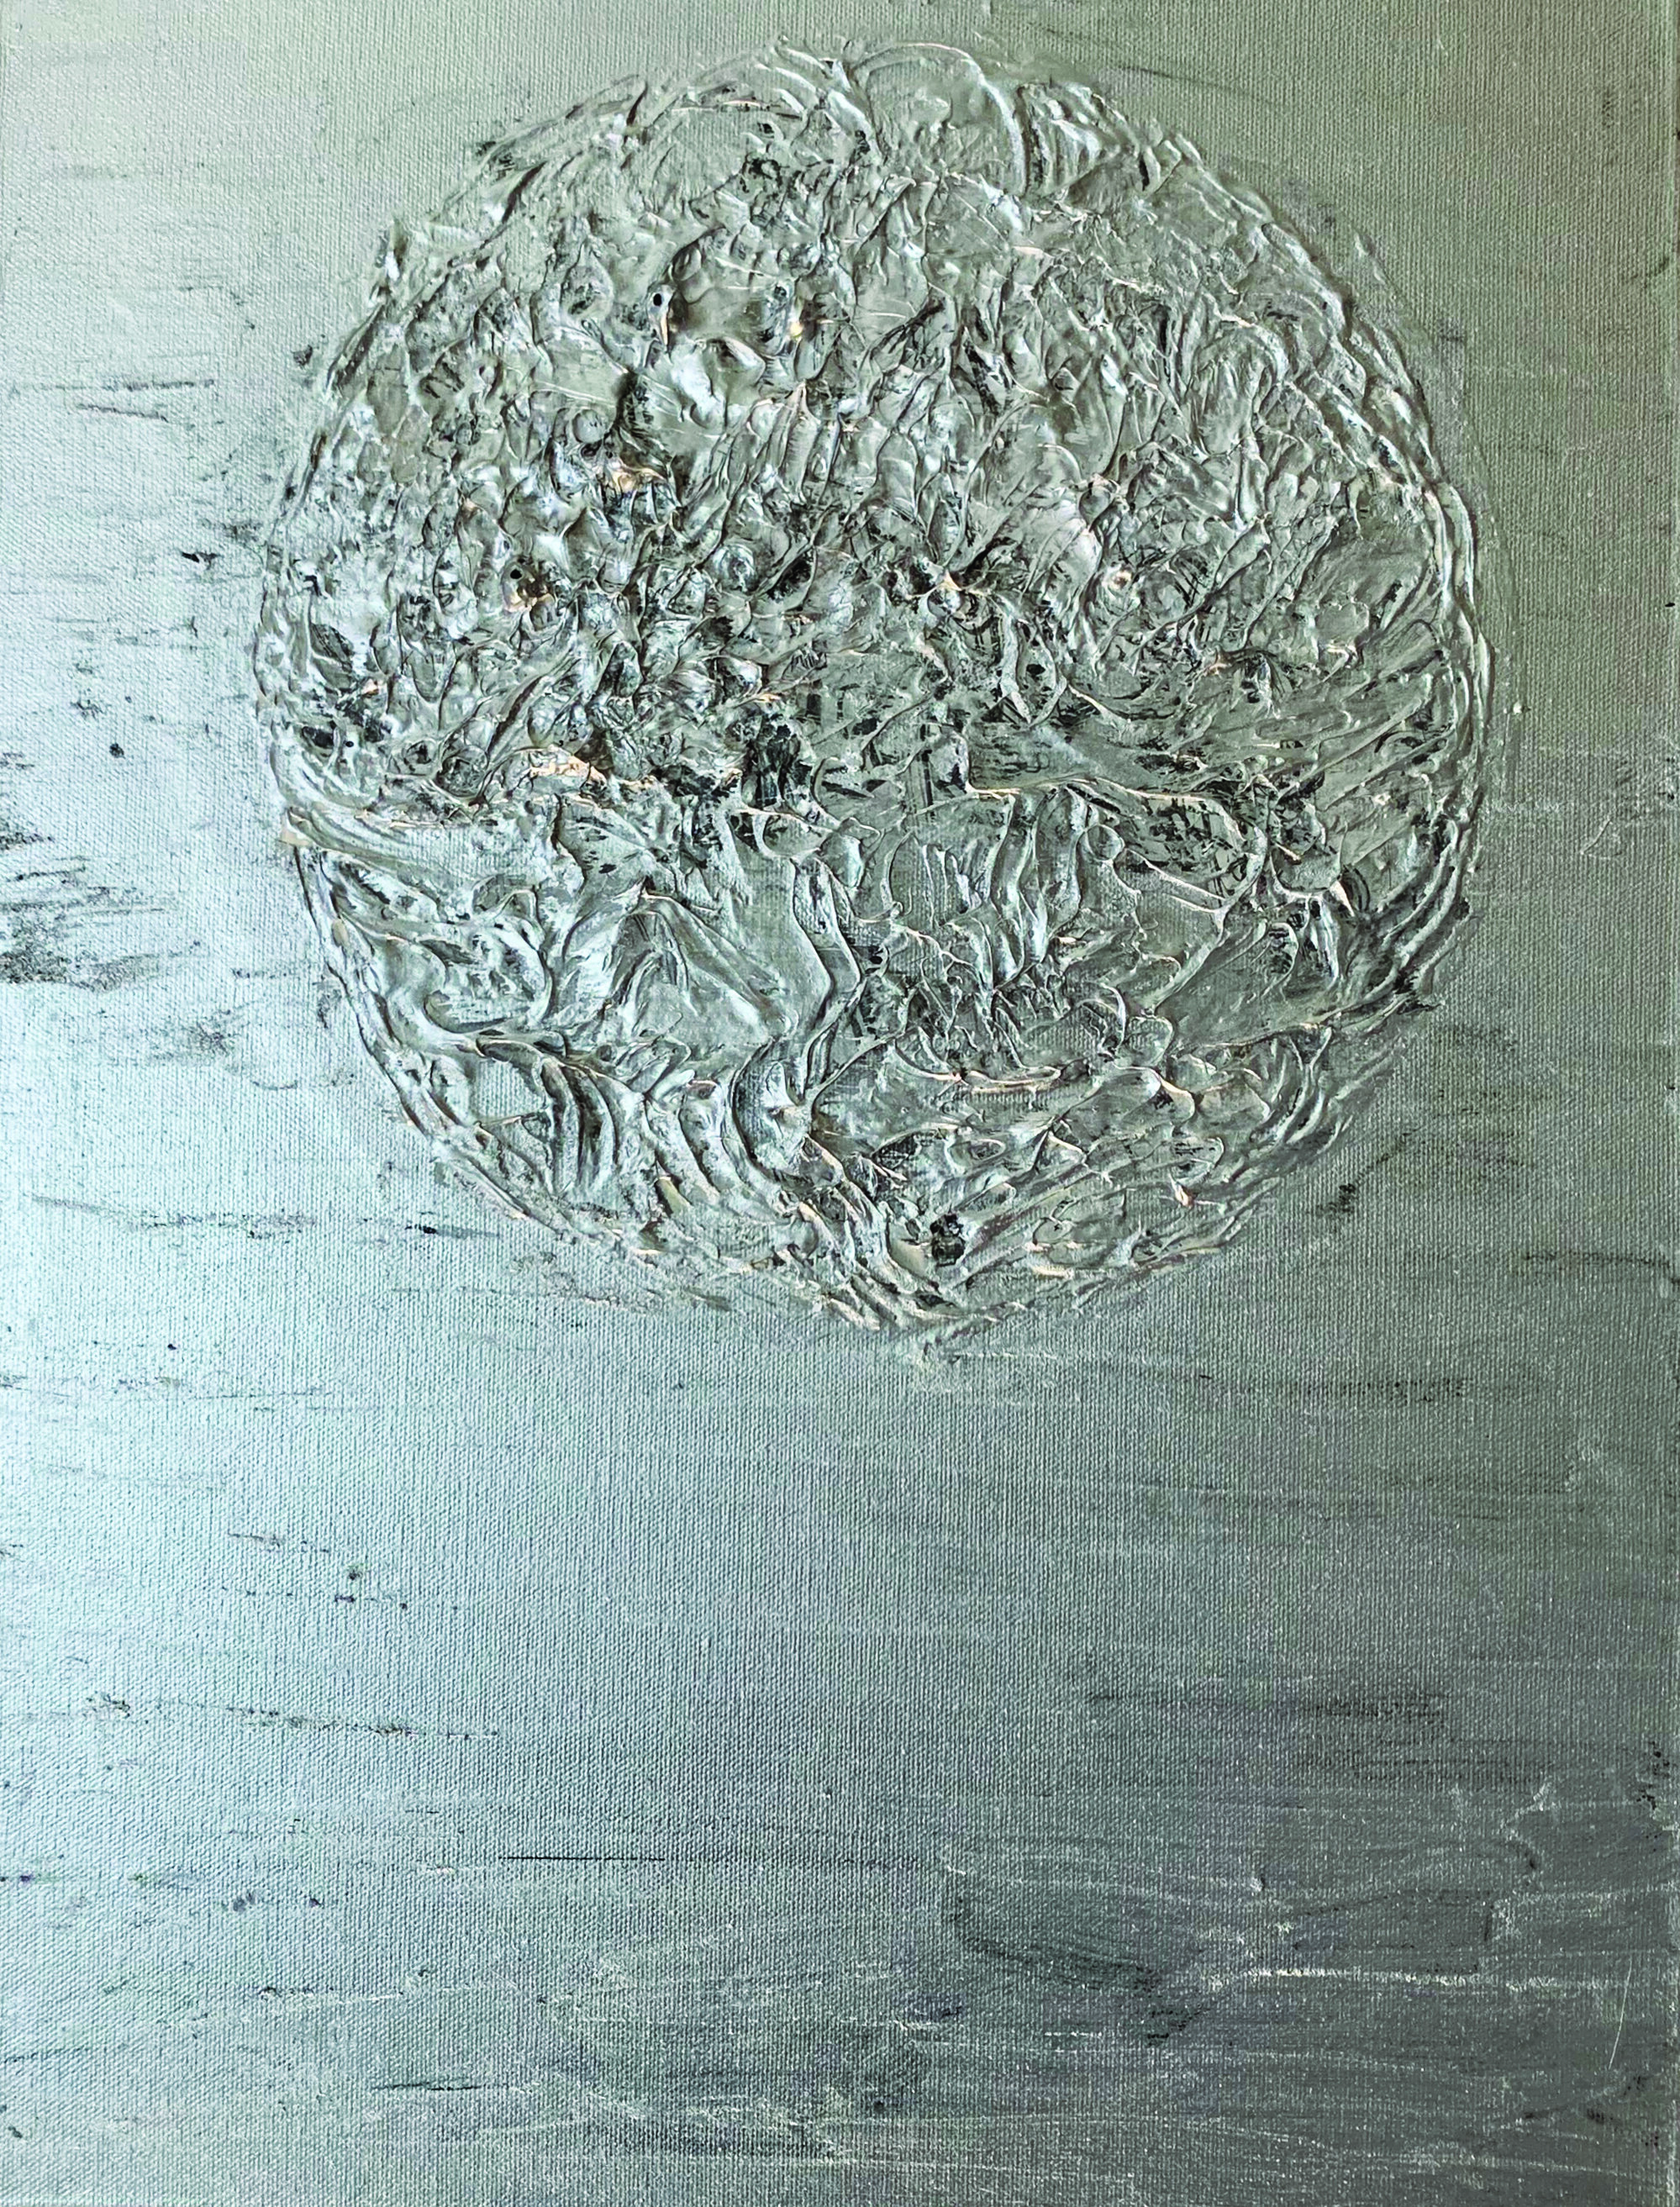 Abstract painting with thickly mounted circle shape in the center, gray and silver background